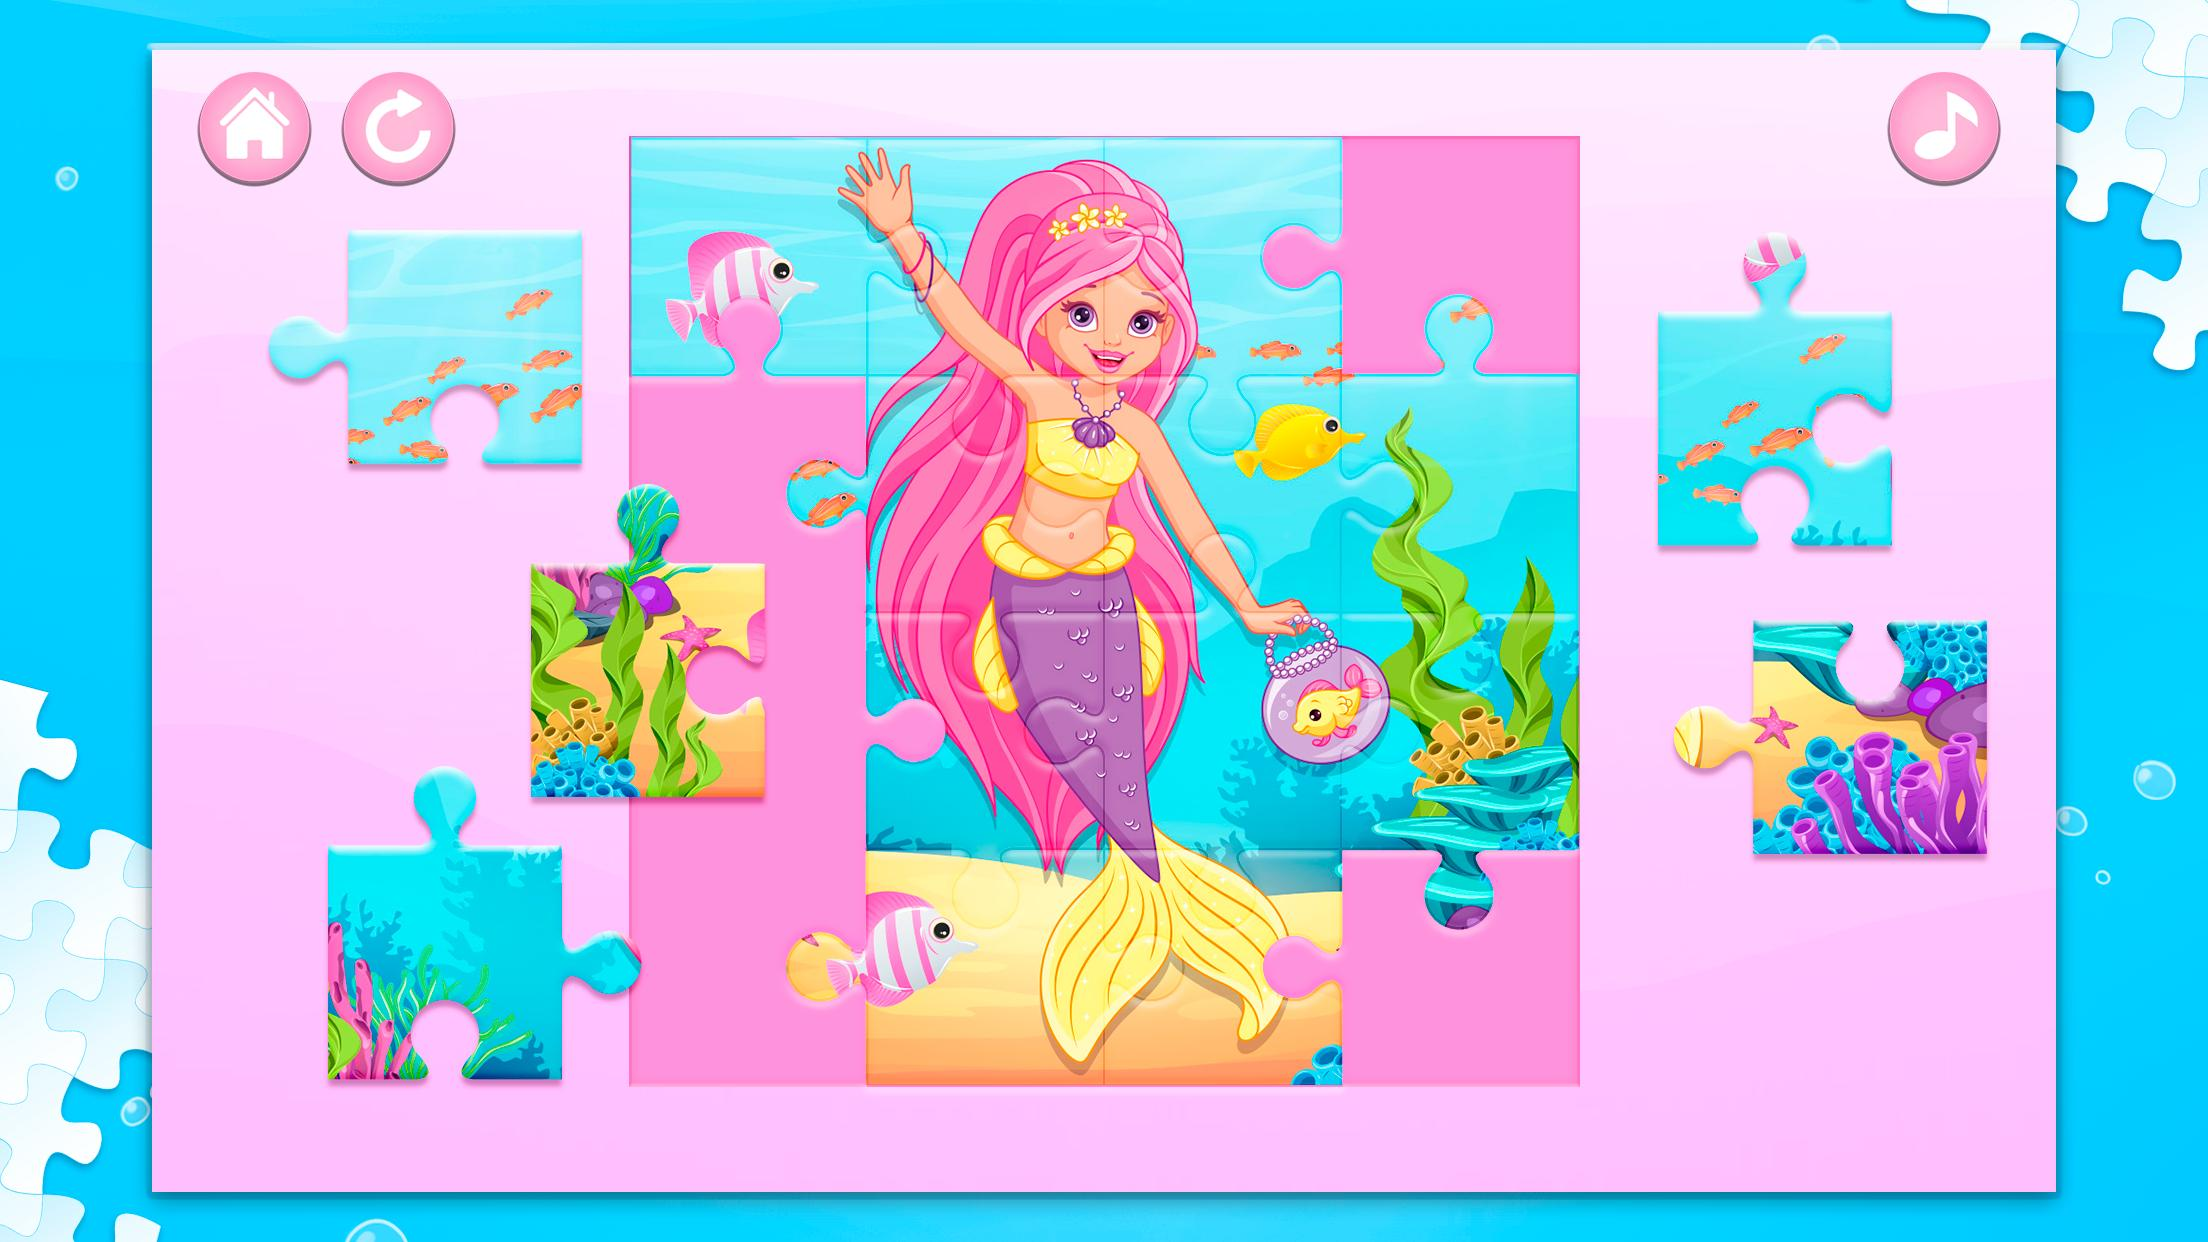 Sirenas Juegos de Rompecabezas for Android - APK Download